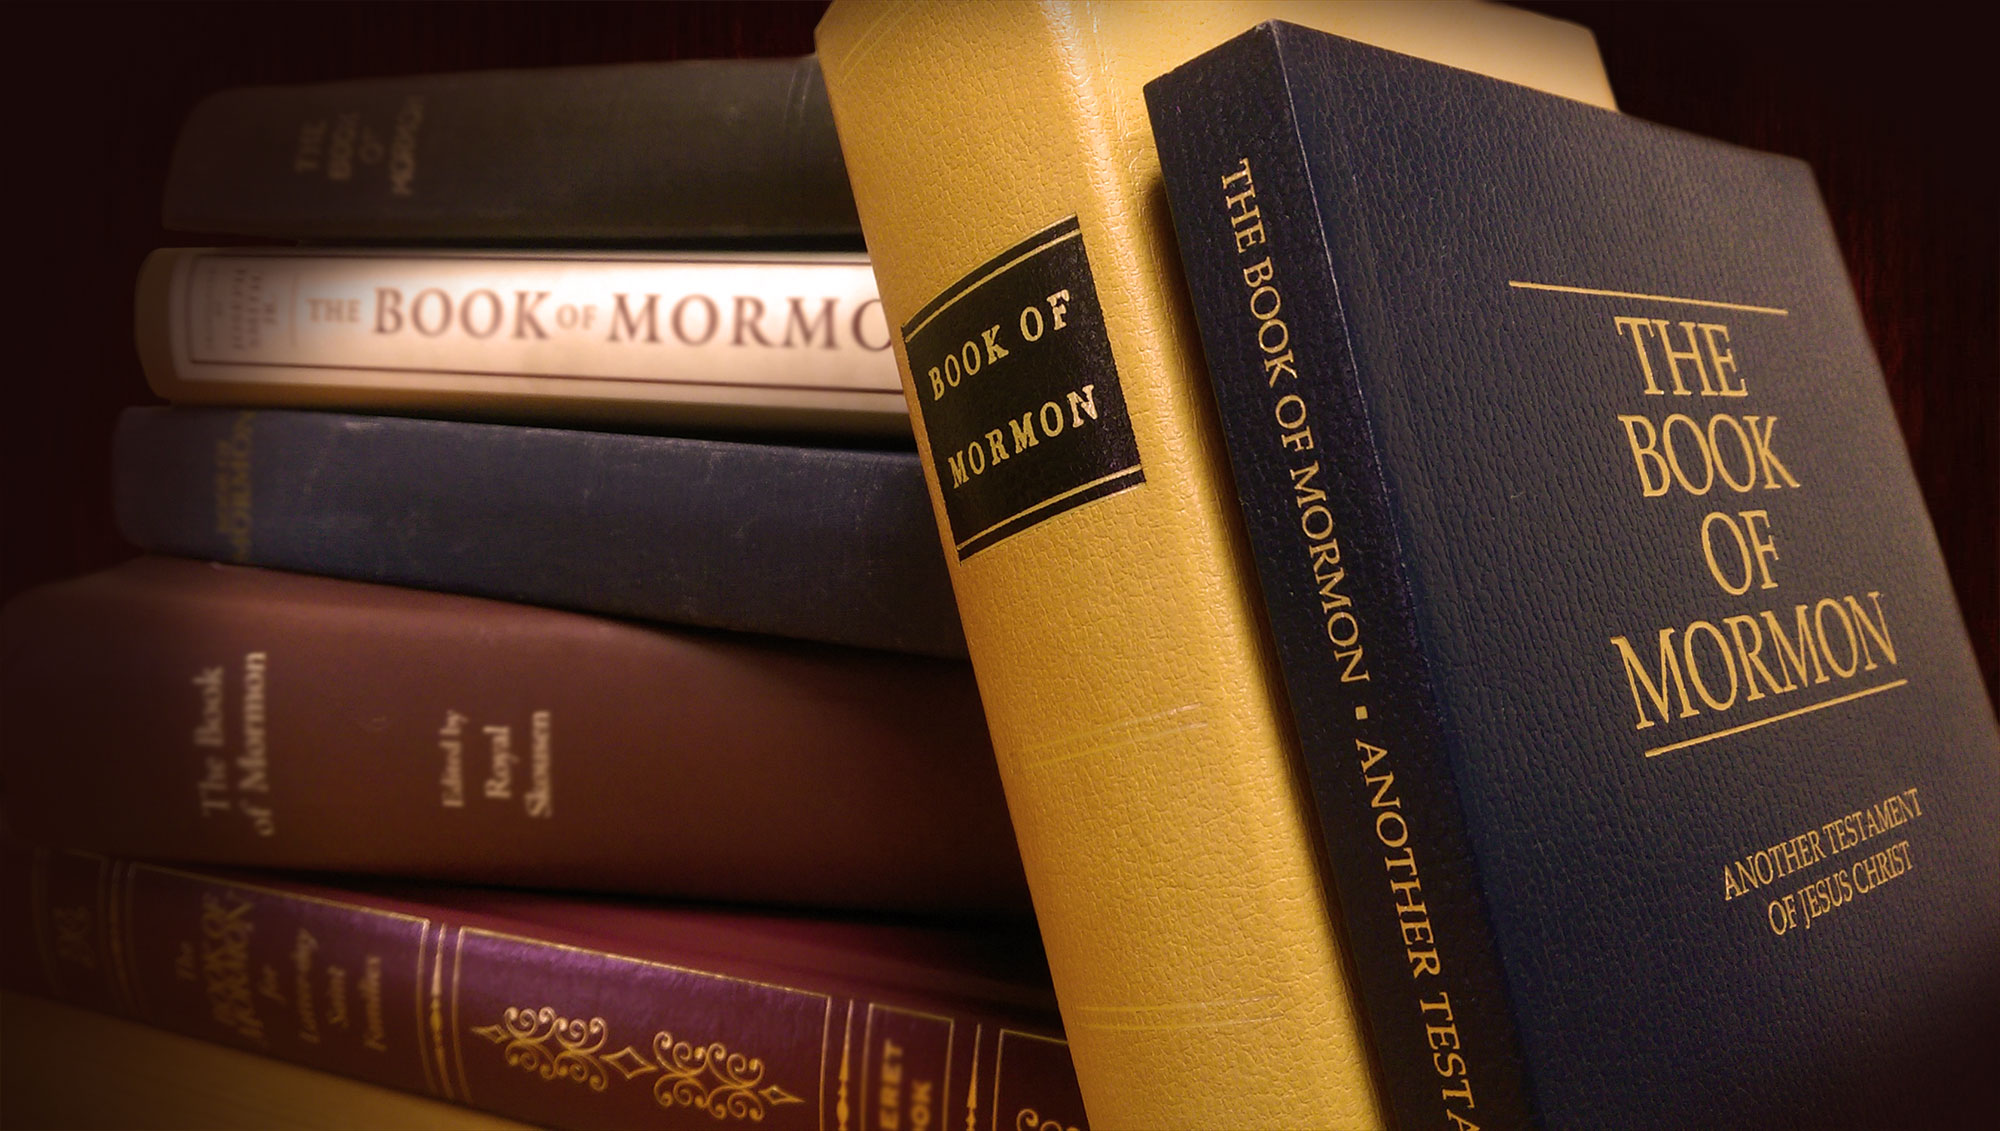 Two copies of The Book of Mormon lean against a stack of several other copies of various publishers and editions.